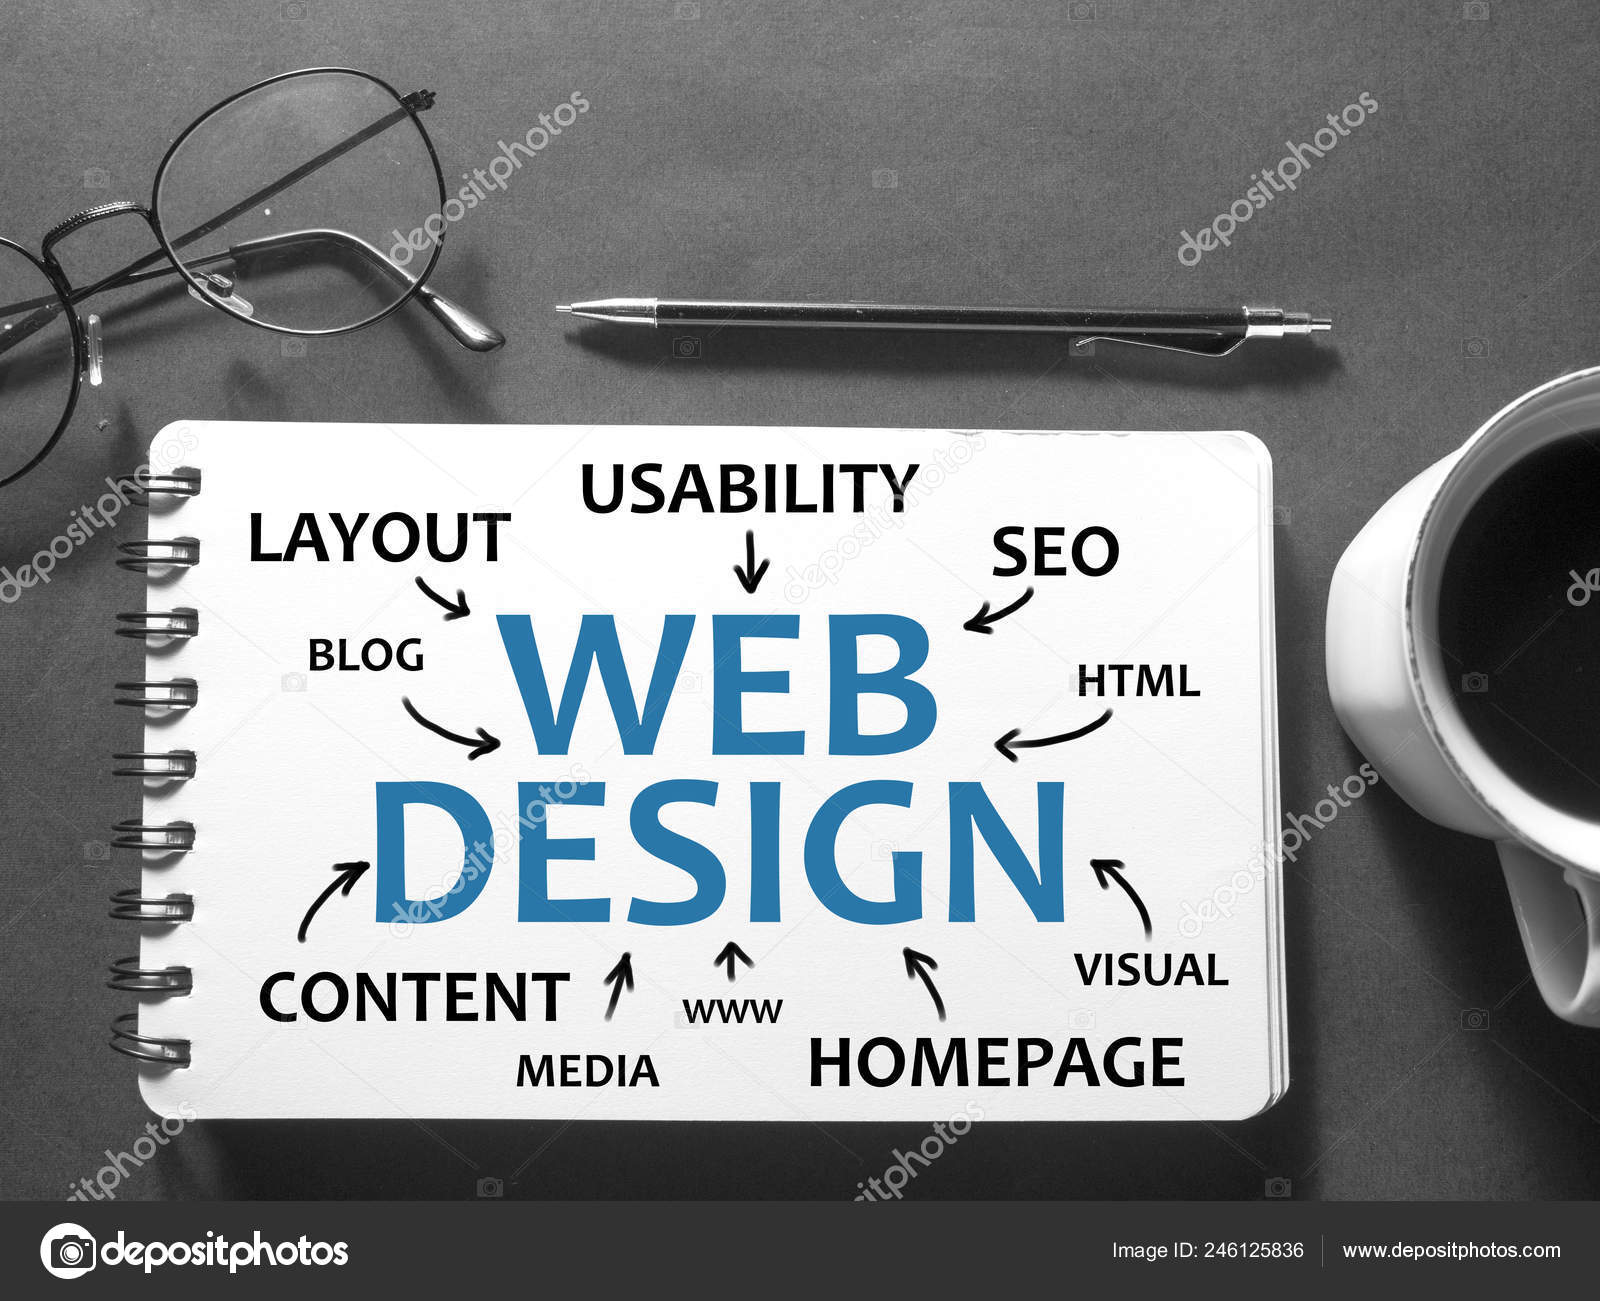 Web Design Internet Business Technology Motivational Inspirational Quotes Words Typography Stock Photo C Airdone 246125836